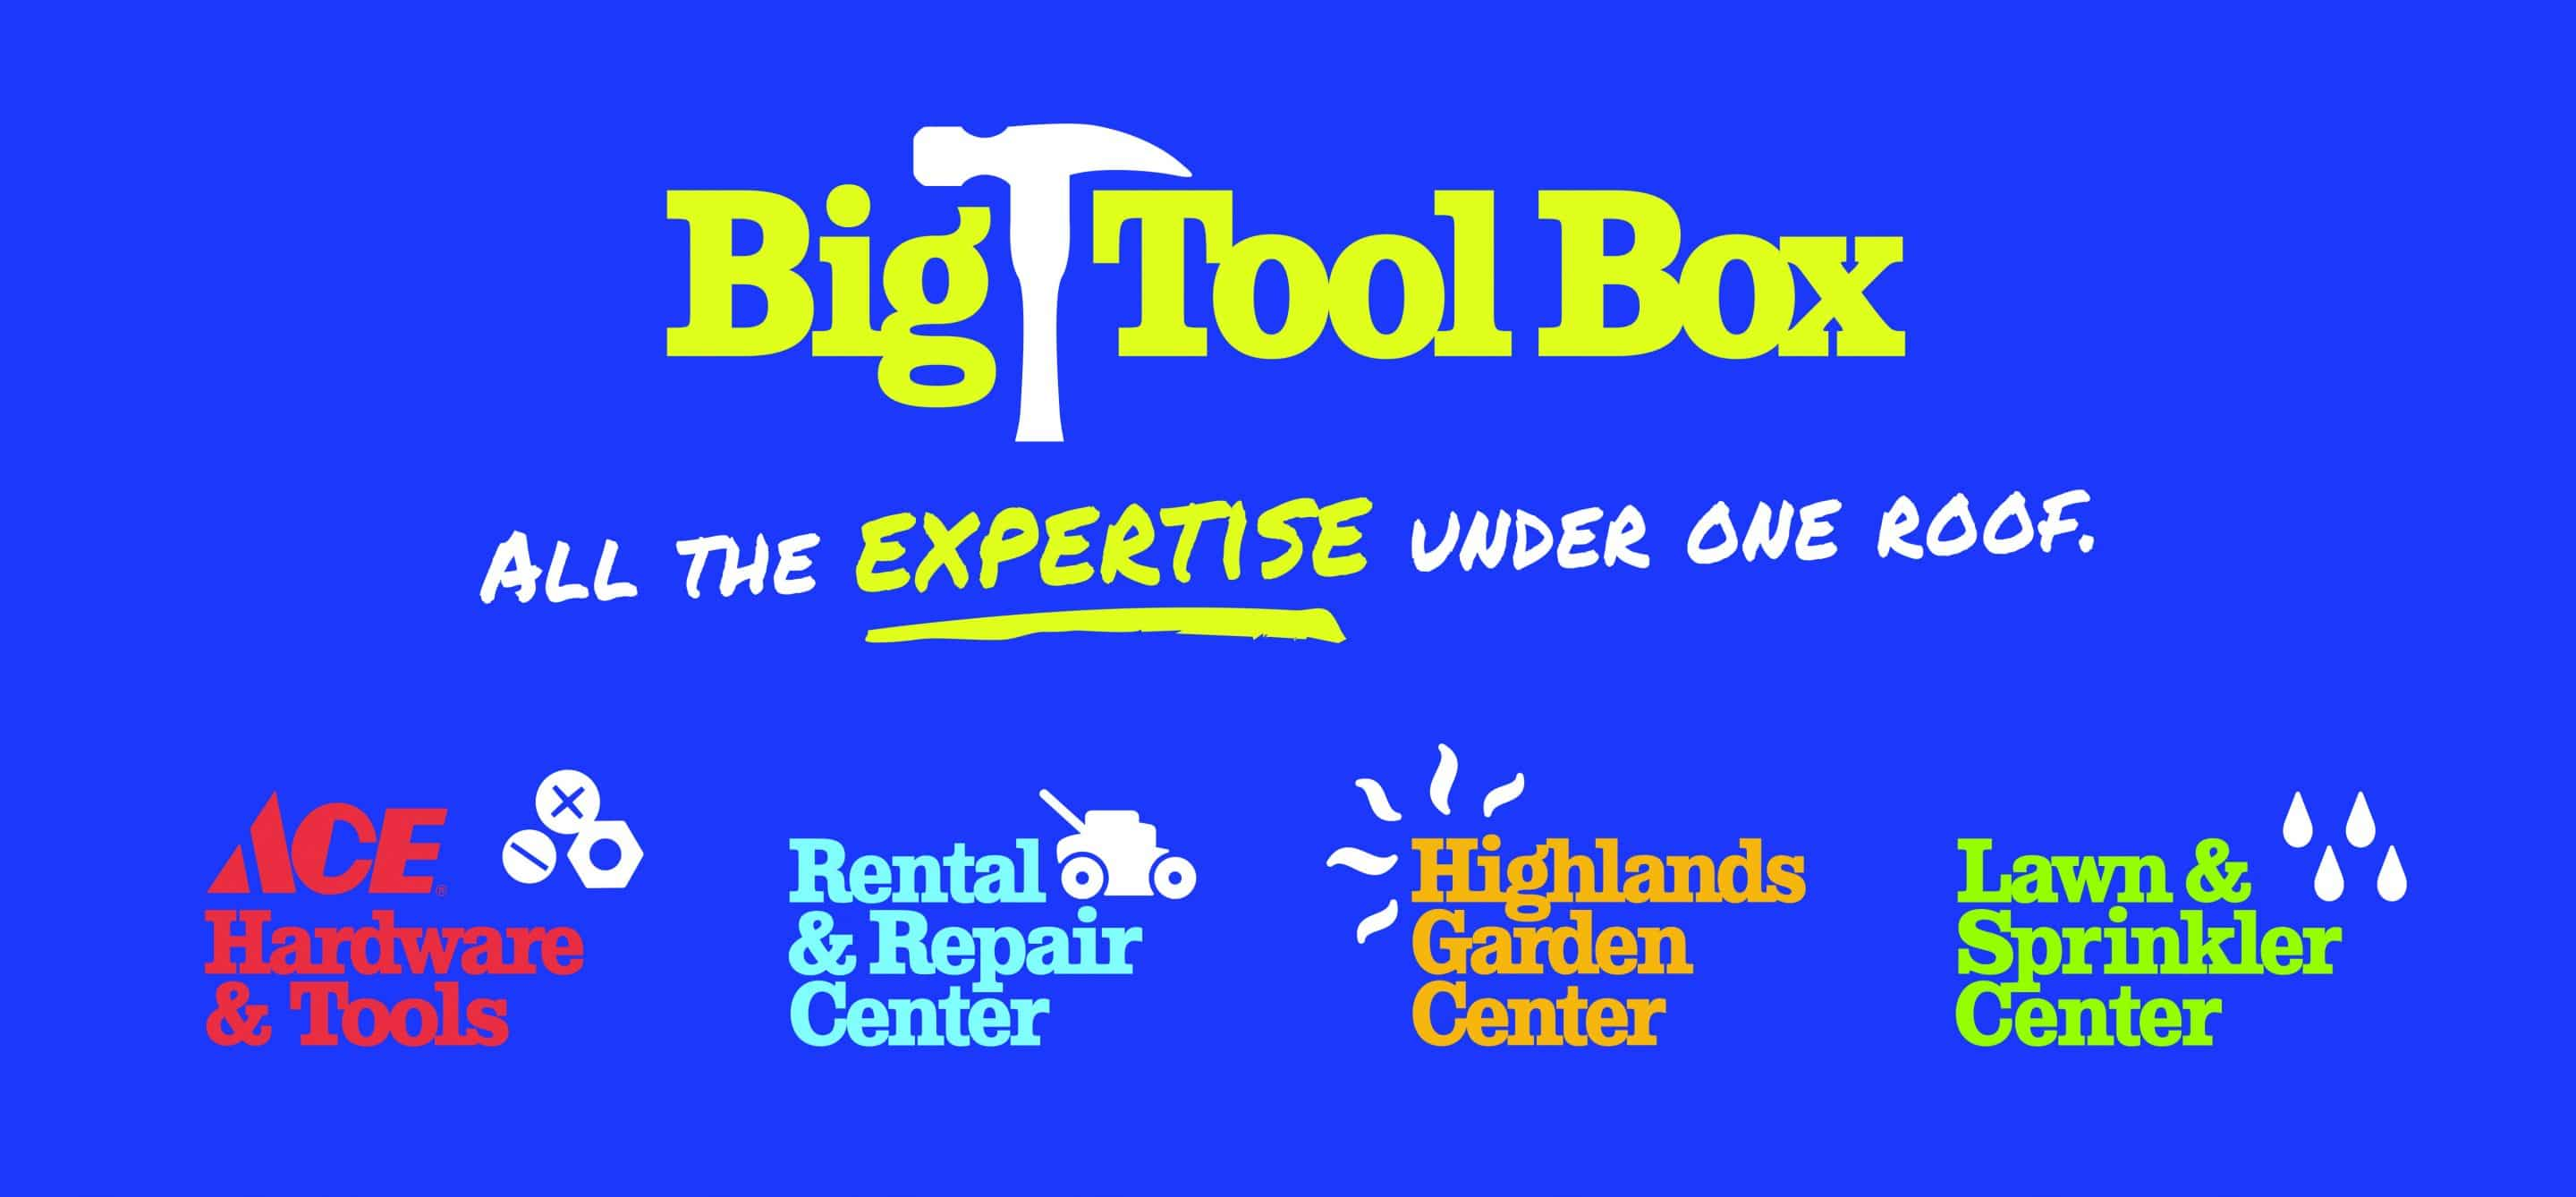 Big Tool Box >> Big Tool Box Bigtoolbox Com